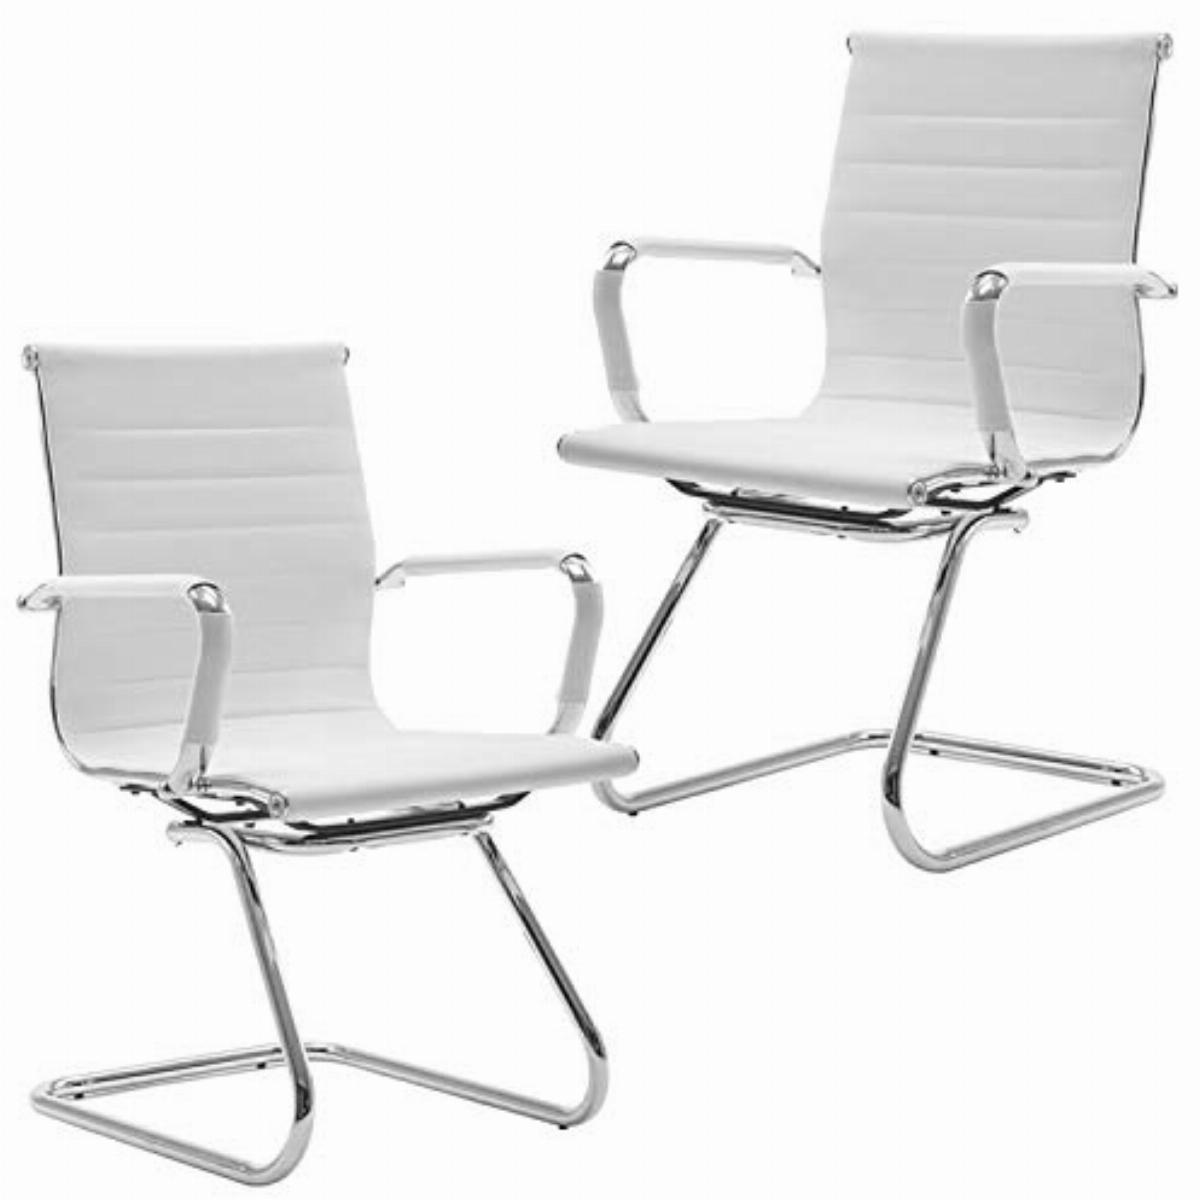 Https Www Comparus Co Uk Products Wahson Meeting Office Chairs Set Of 2 Reception Chairs In Pu Leathervisitors Chair With Chrome Frameguest Chairs White 1035842 Htm